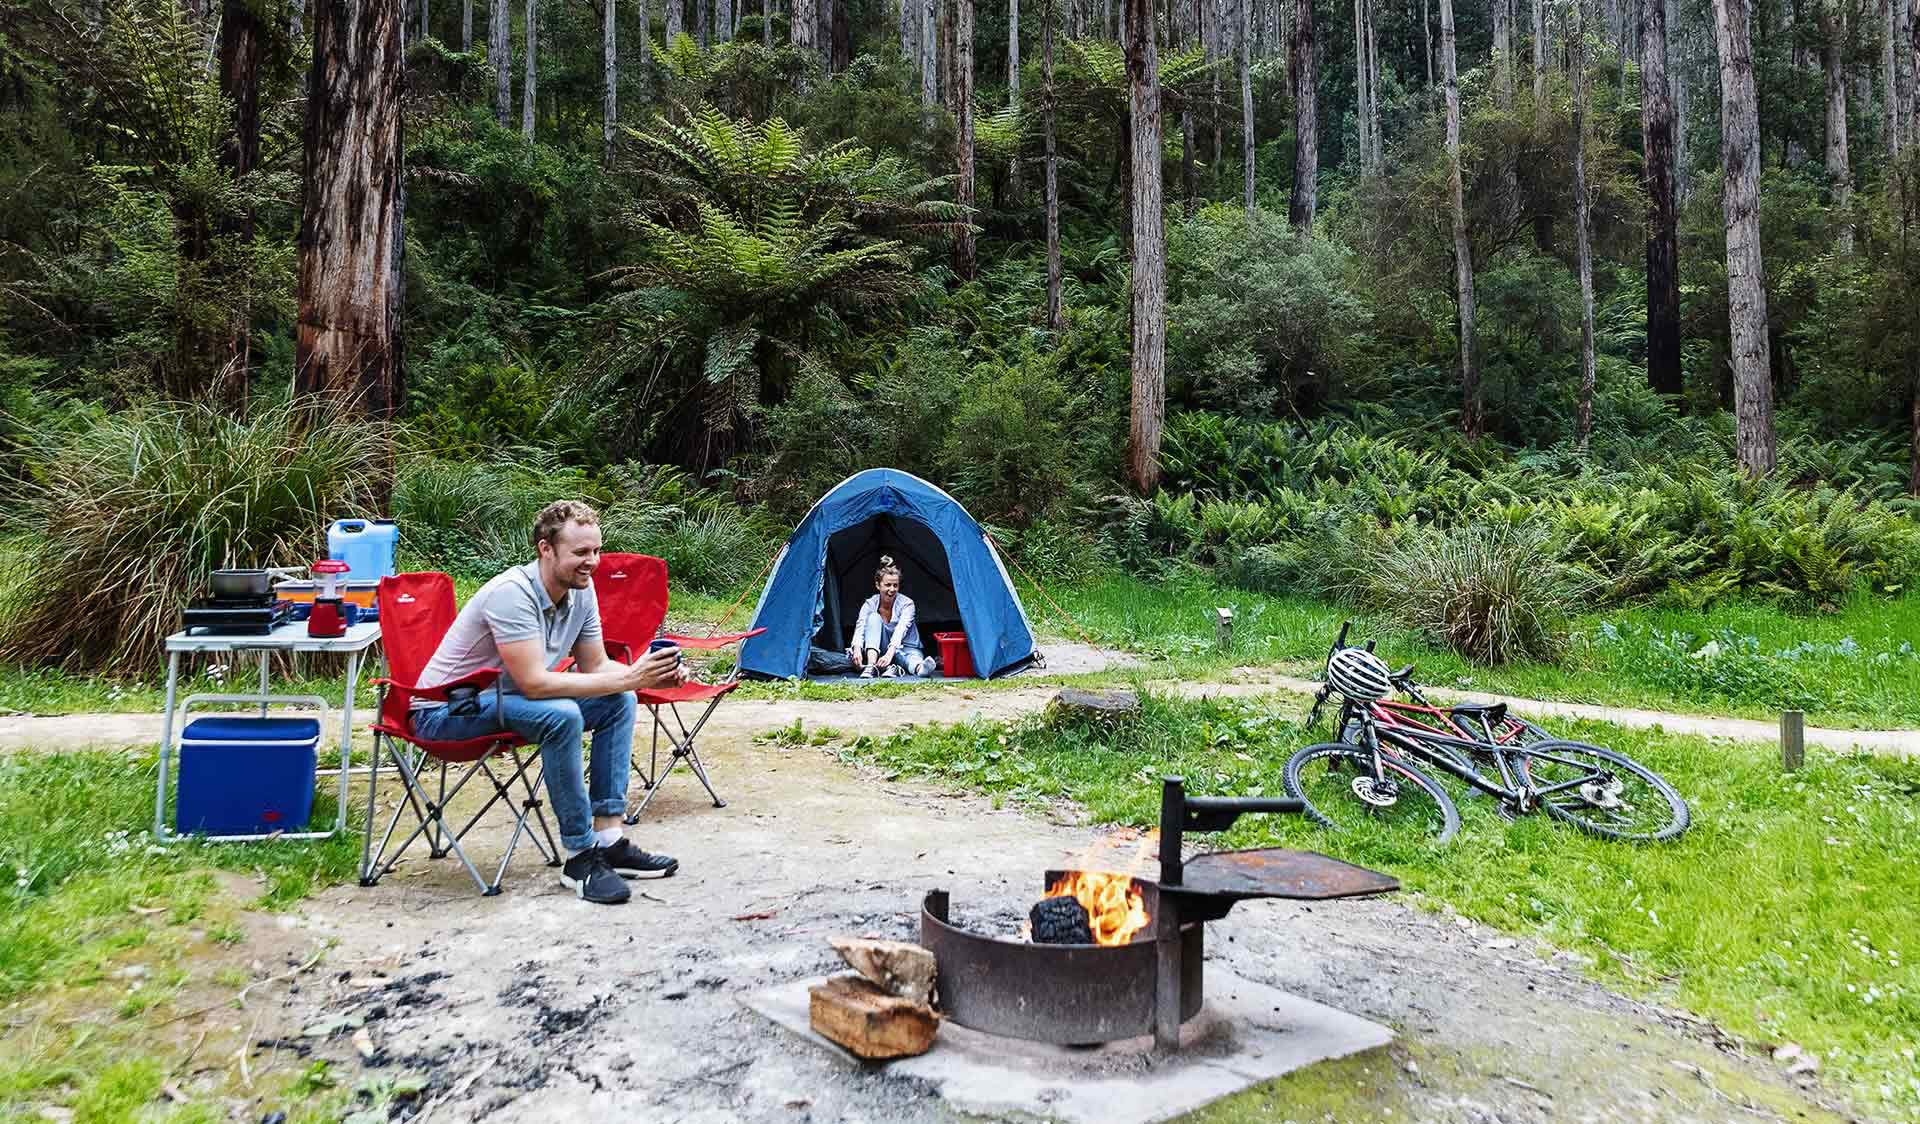 A couple in their later twenties enjoy a joke while at their campsite at Lake Elizabeth Campground in the Great Otway National Park.